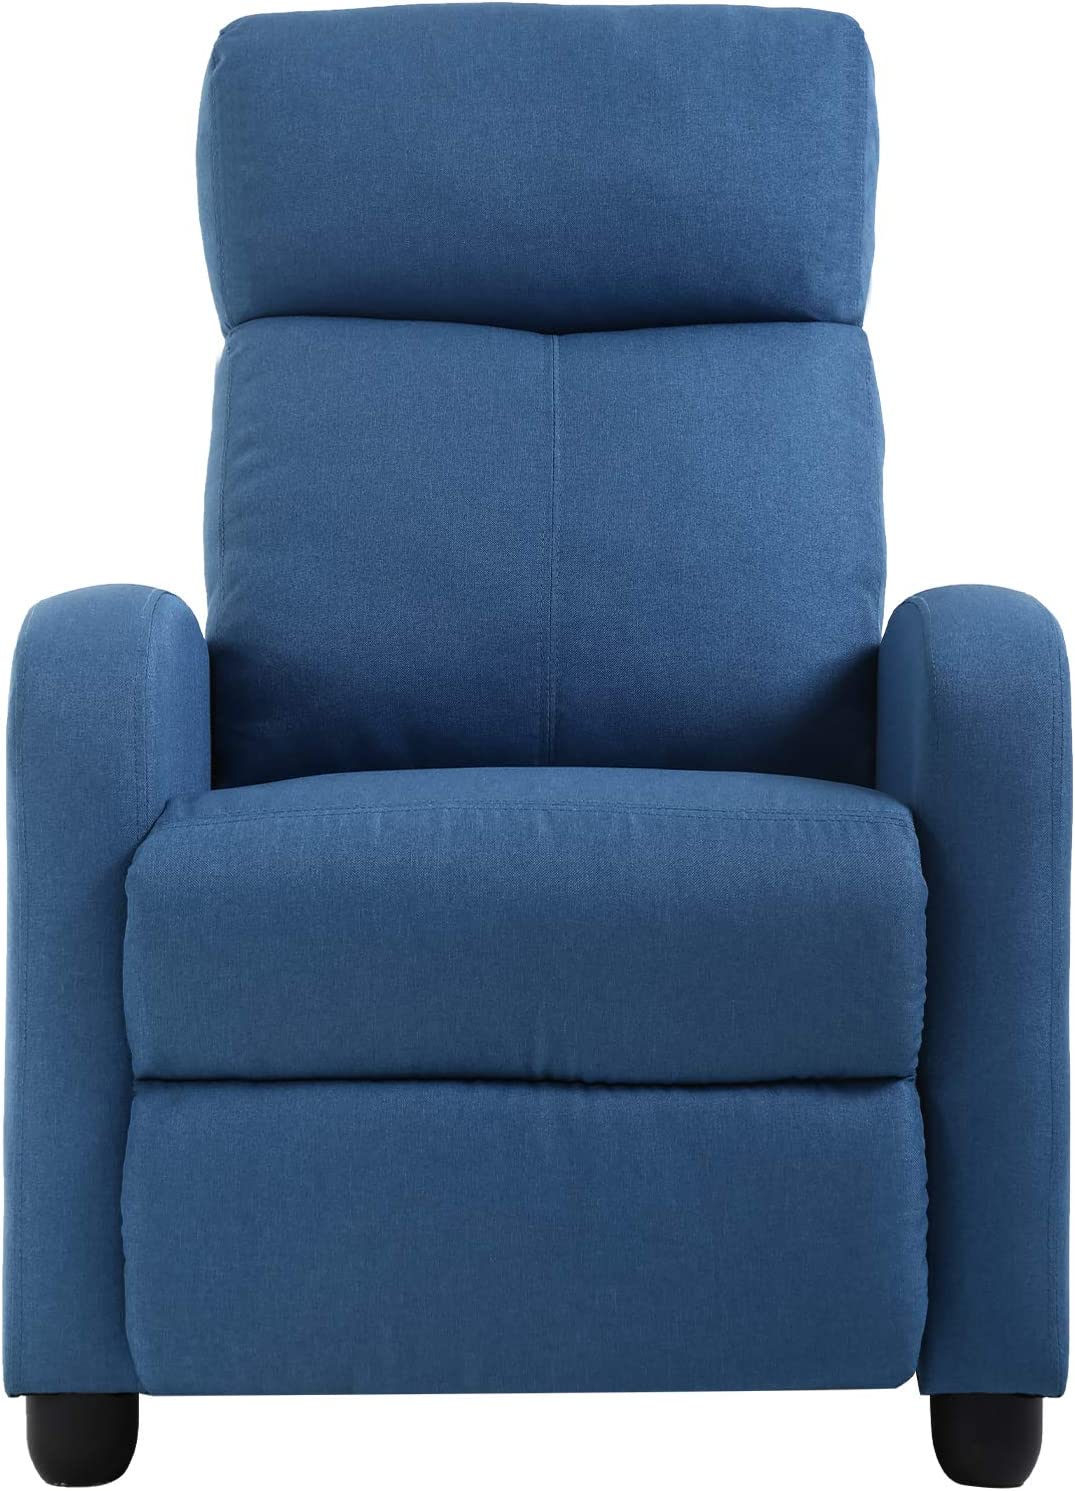 Recliner Chair for Living Room Home Theater Seating Single Reclining Sofa Lounge with Padded Seat Backrest (Blue)